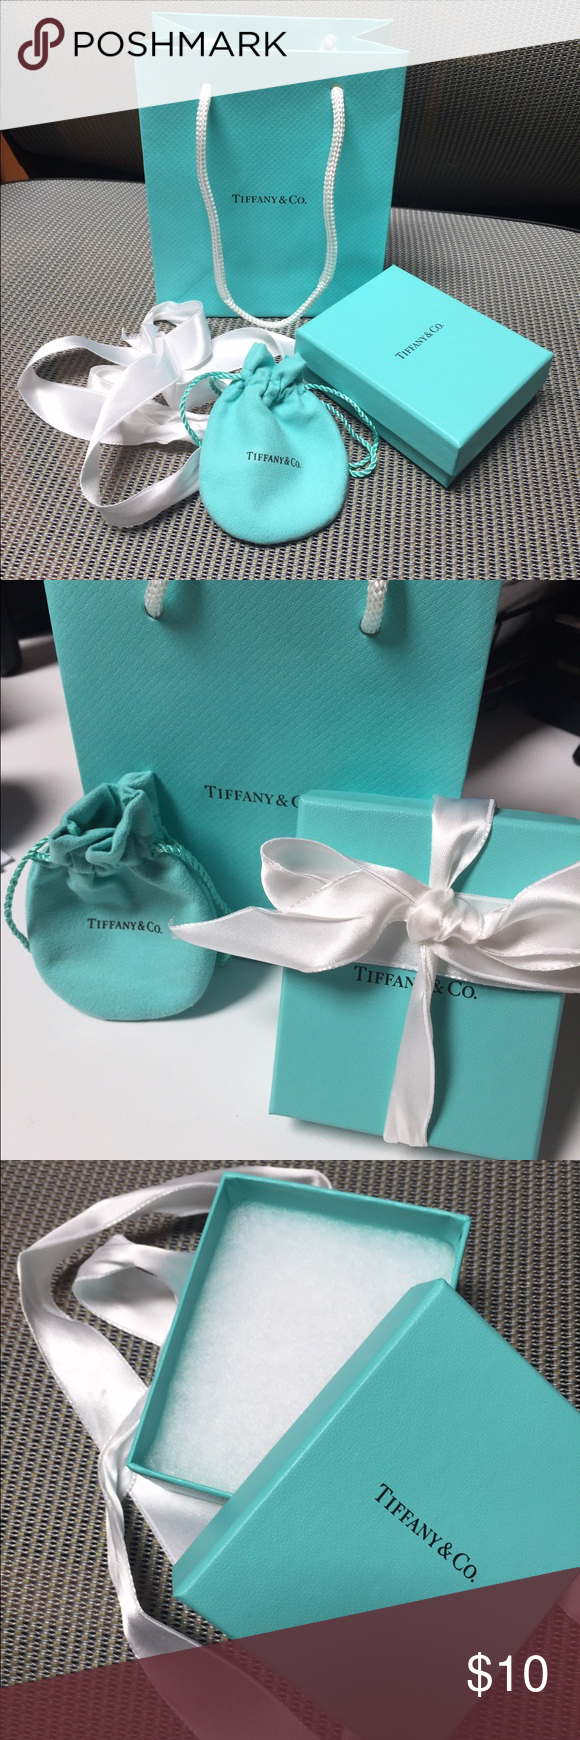 Tiffany Gift Bag and Box Small sized Tiffany gift bag, box, jewelry bag and white ribbon. All you need to make that Tiffany gift extra special. All original. Tiffany & Co. Bags